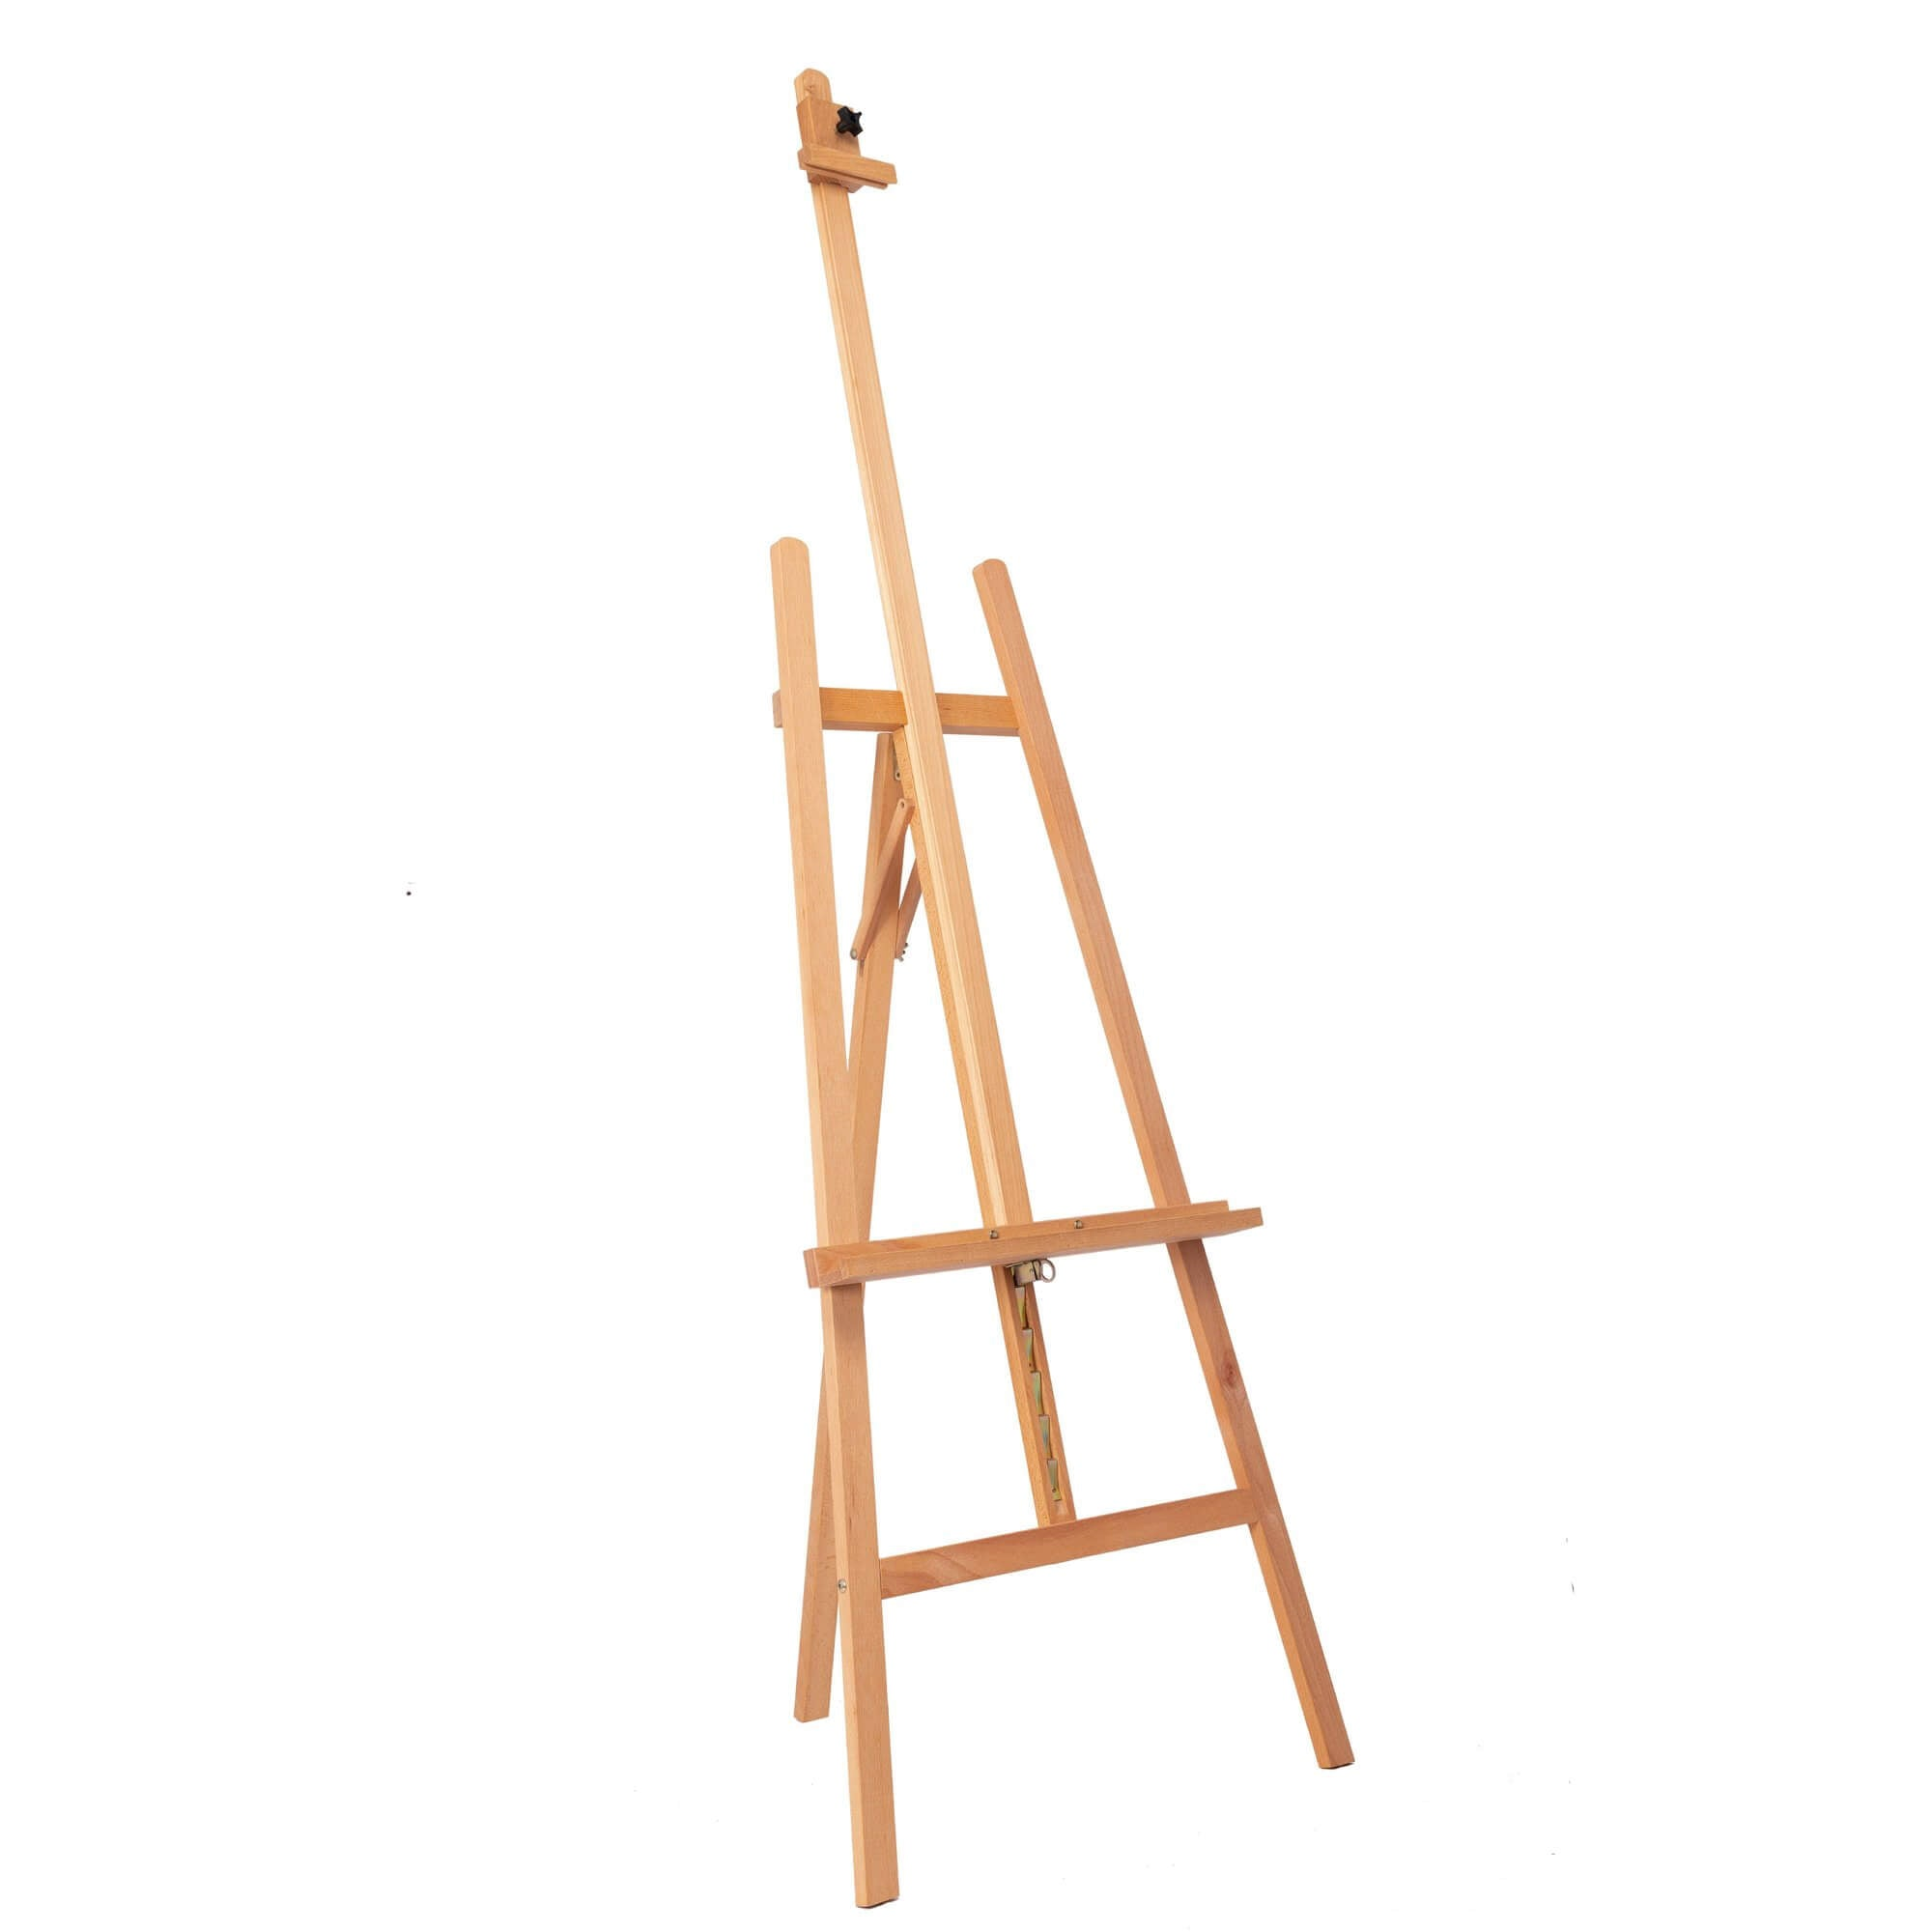 ARTdiscount KIELDER Artists/Display Easel